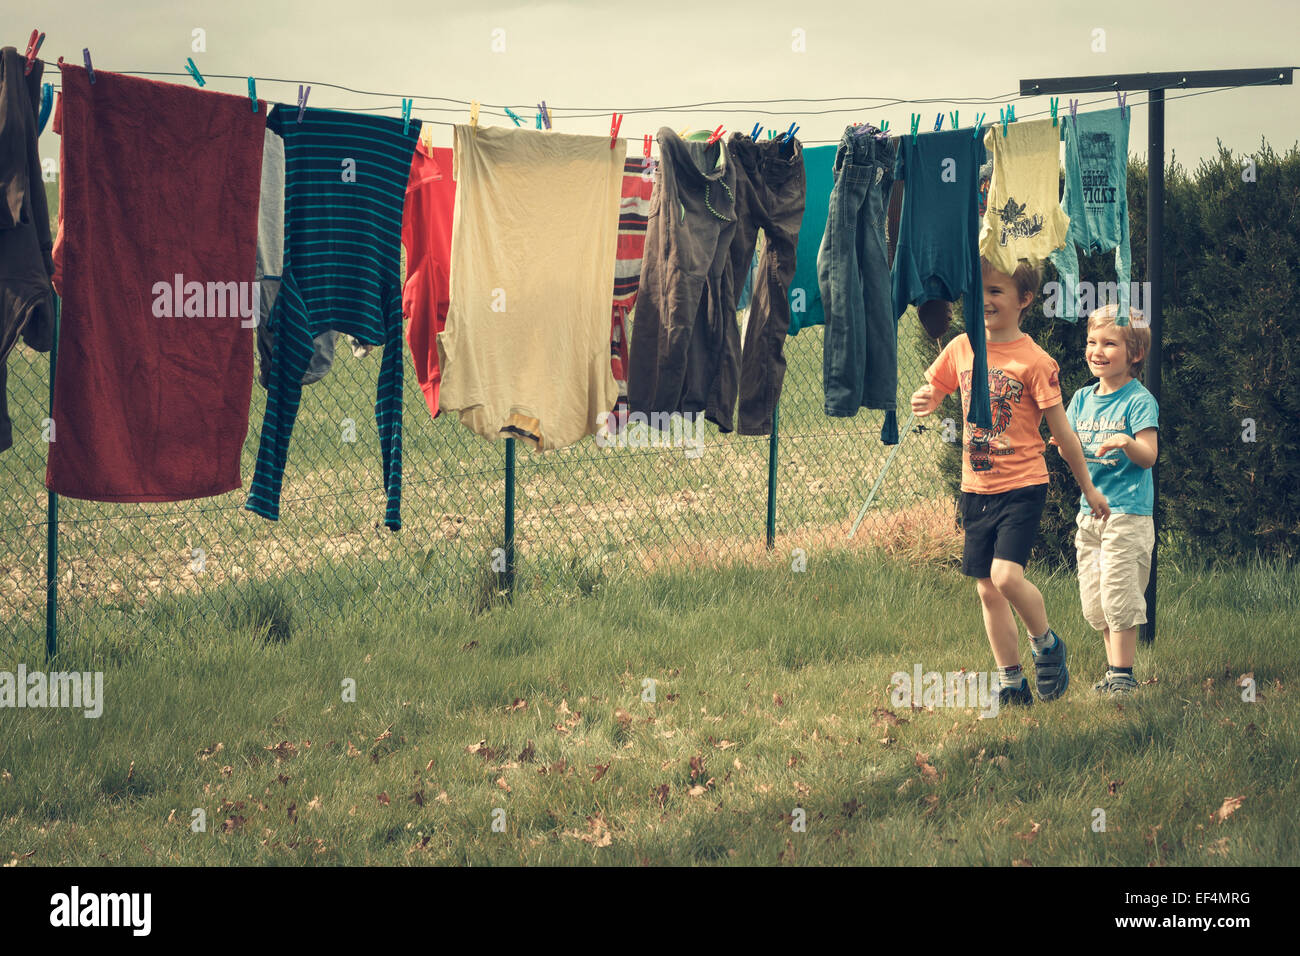 brothers playing outdoors laundry hanging - Stock Image